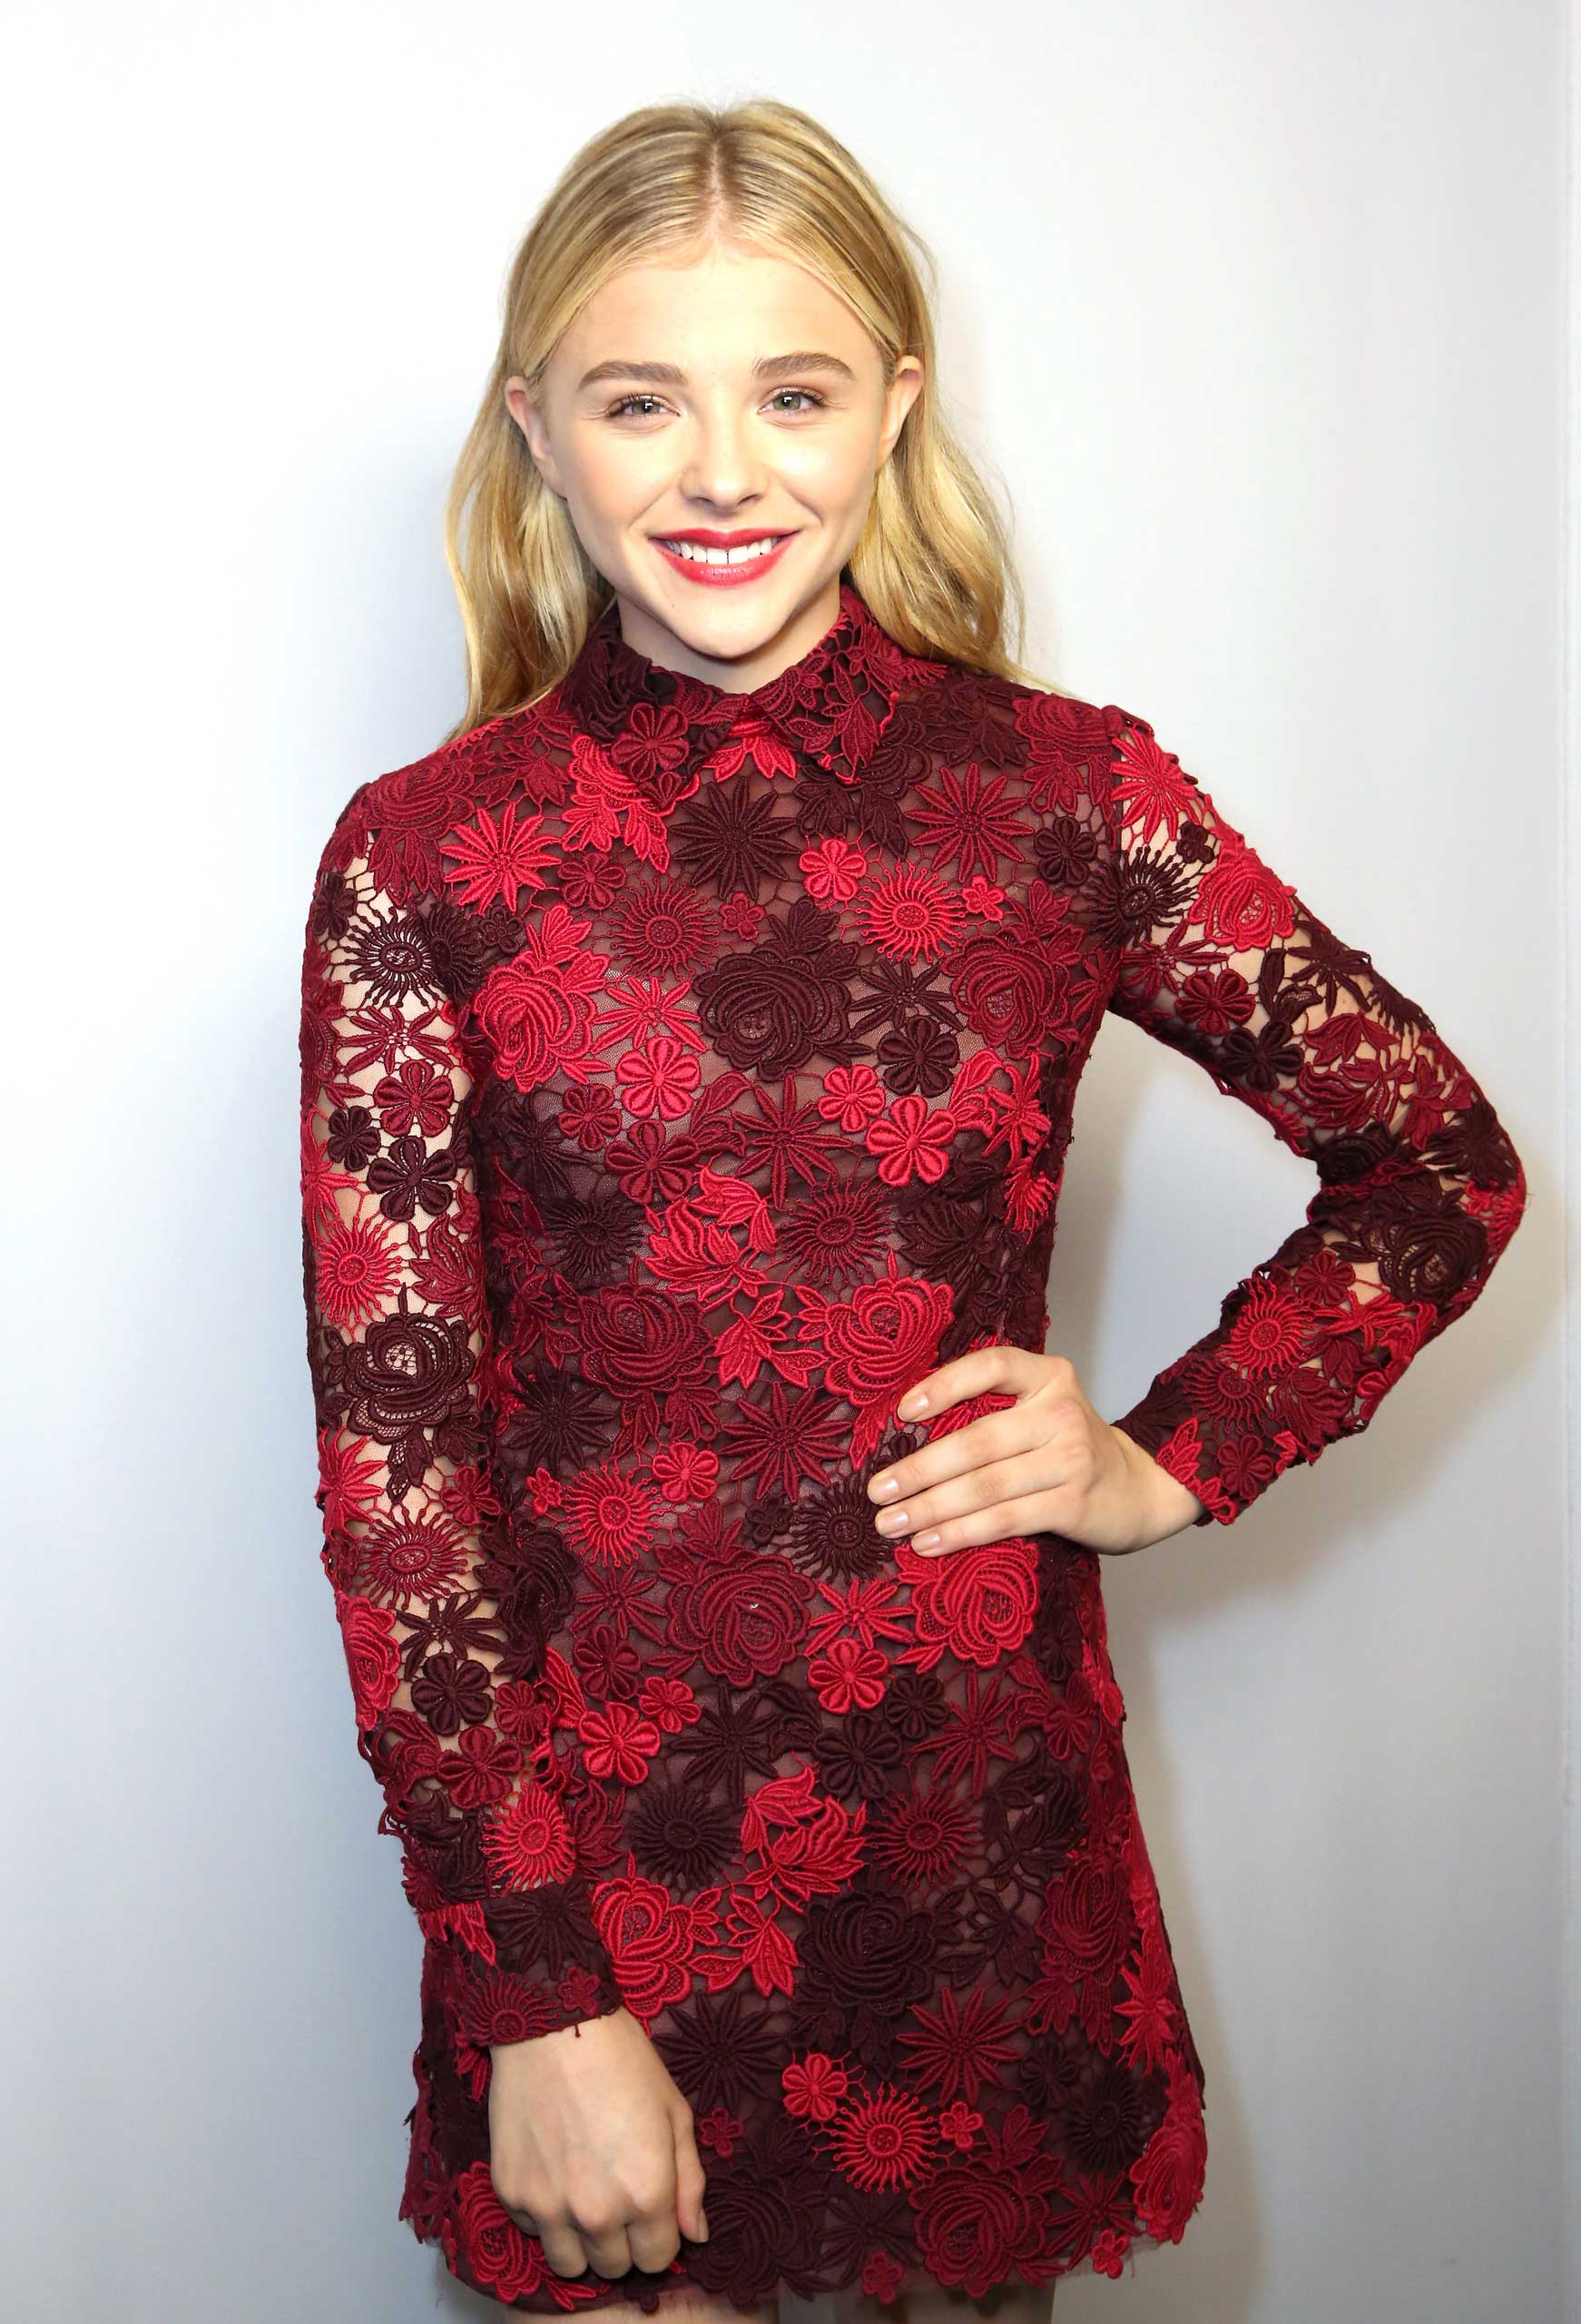 Actress ChloÎ Grace Moretz attends the 2014 Young Hollywood Awards brought to you by Samsung Galaxy at The Wiltern on July 27, 2014 in Los Angeles, California. (Photo by Ari Perilstein/Getty Images for Variety)